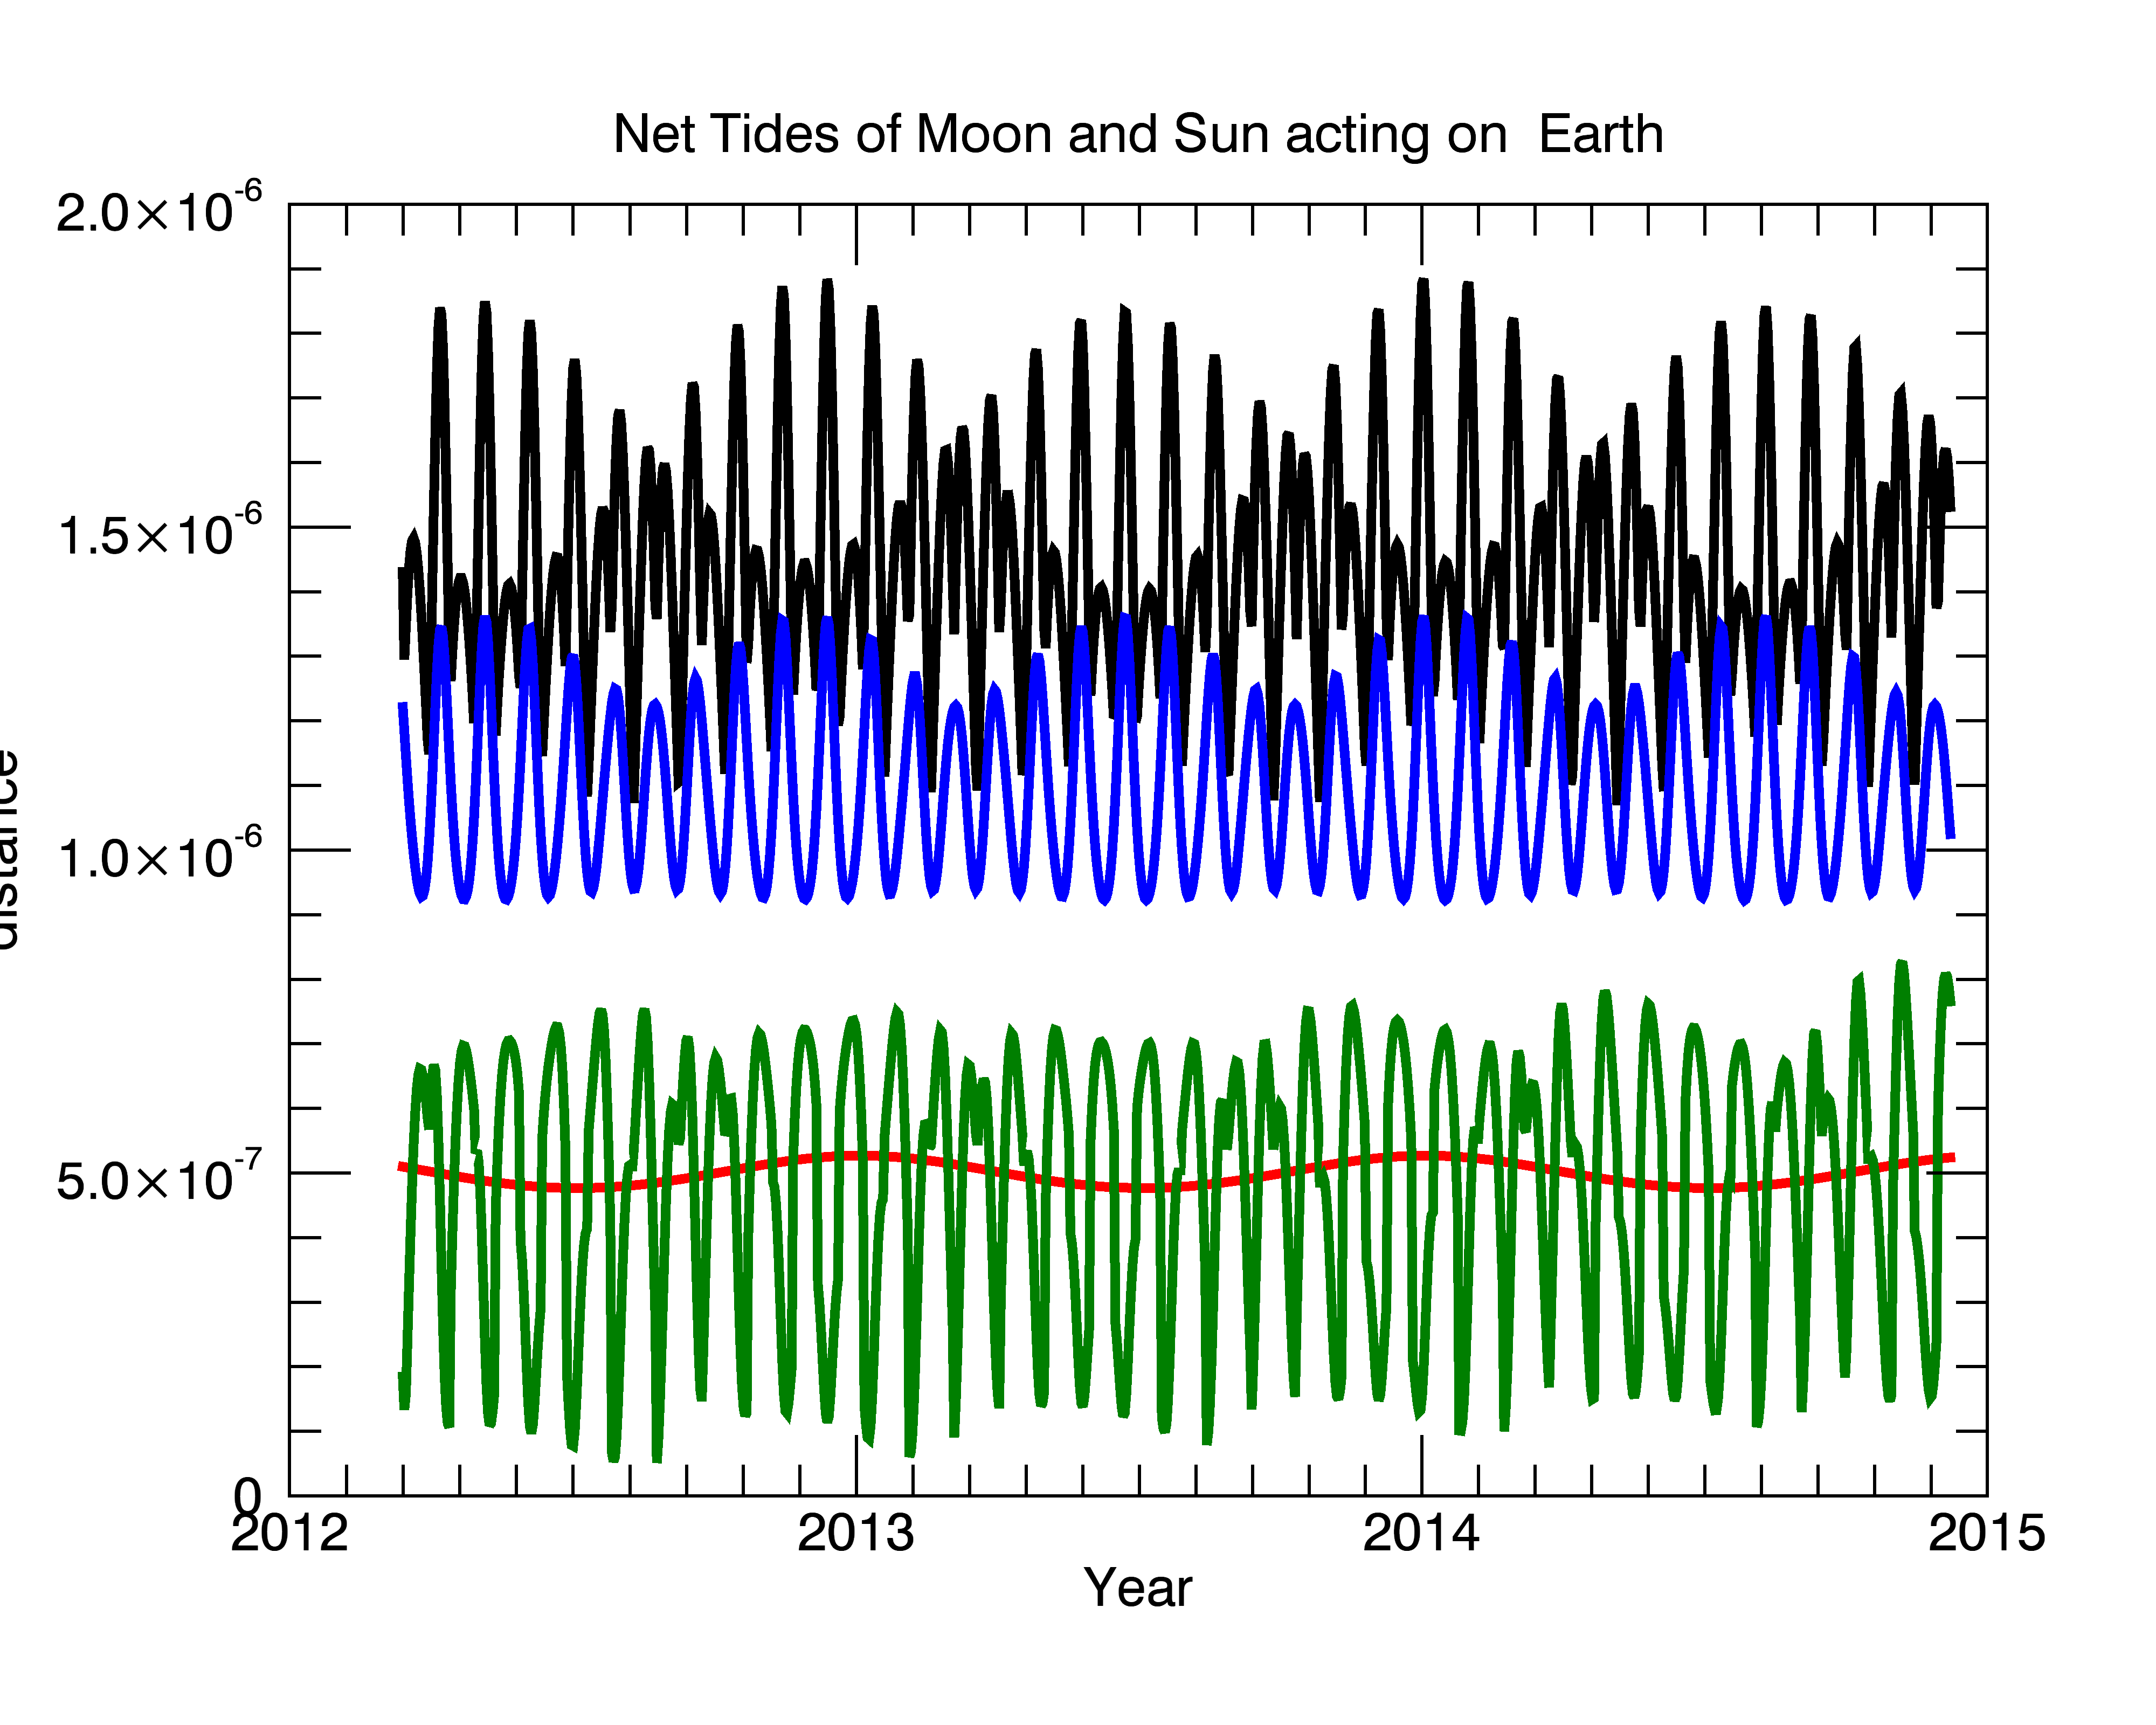 Recent daily tidal components. The lunar tide is shown in blue, the solar tide in red. Green shows the tractional acceleration at 65N.